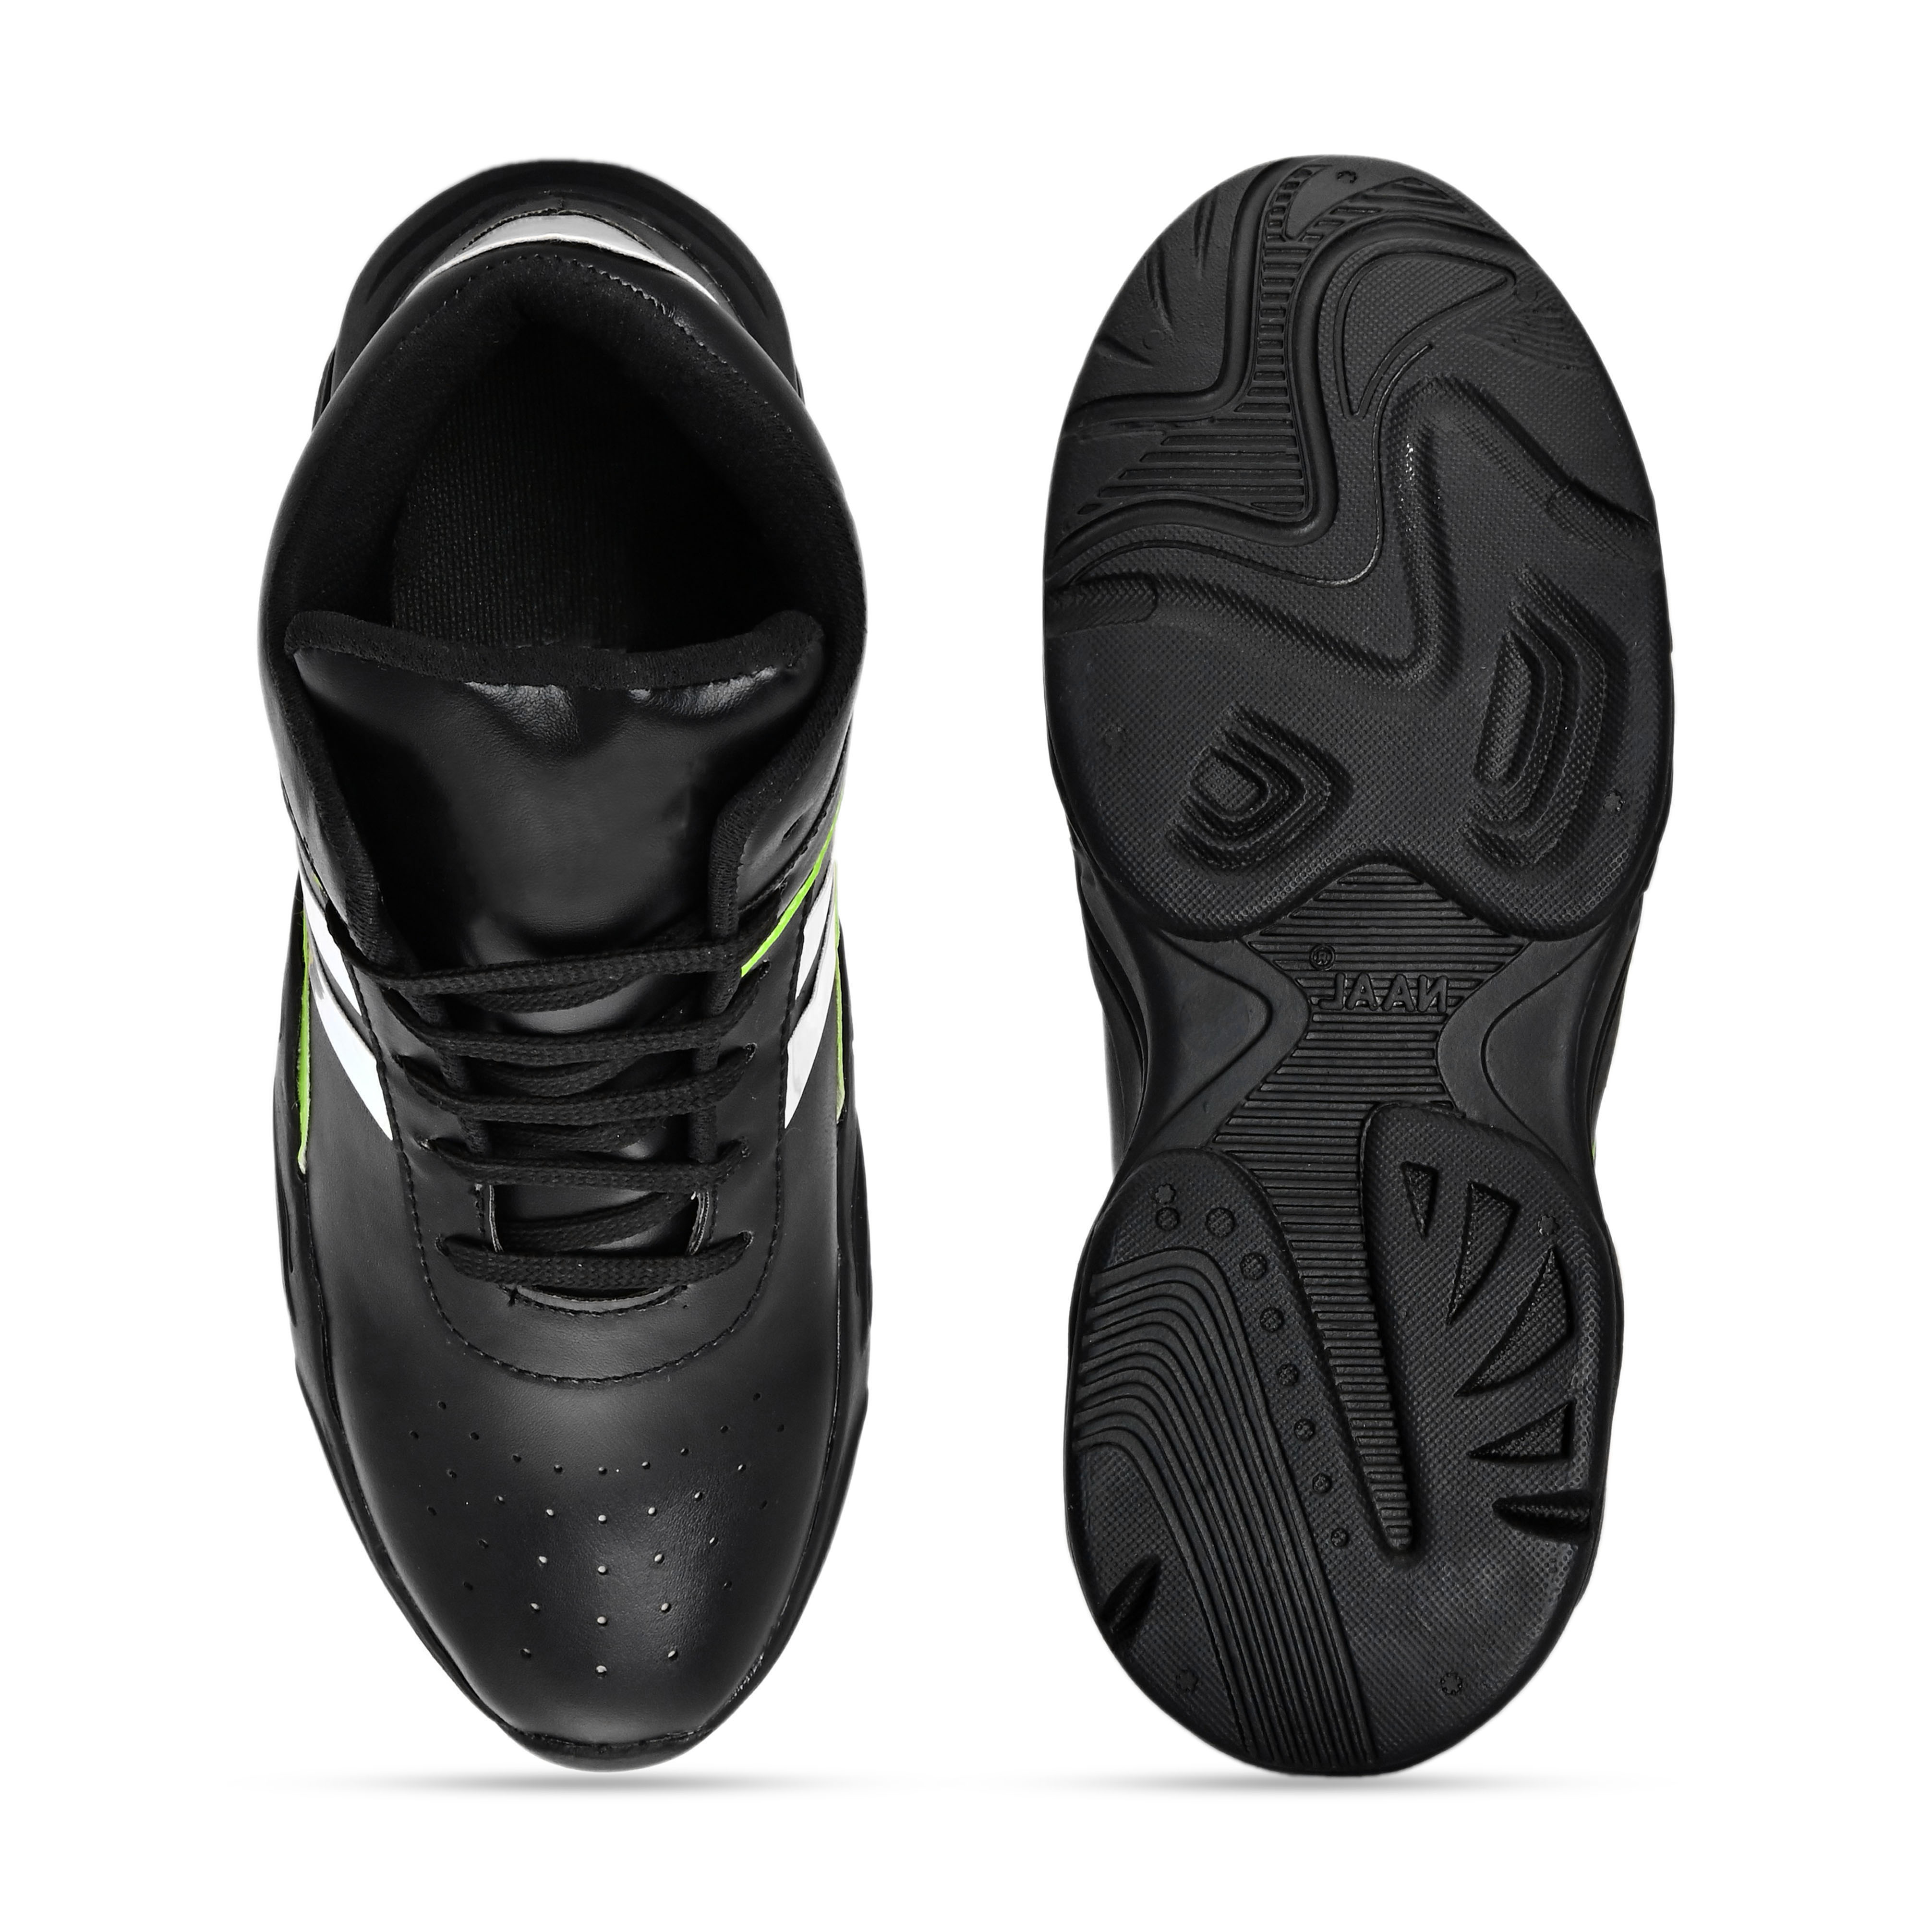 BRIFAR COMFORTABLE & TRENDY SPORTS SHOES ARE RELIABLE FOR ANY BFS0796BLK1 (7-10, BLACK, 4 PAIR)